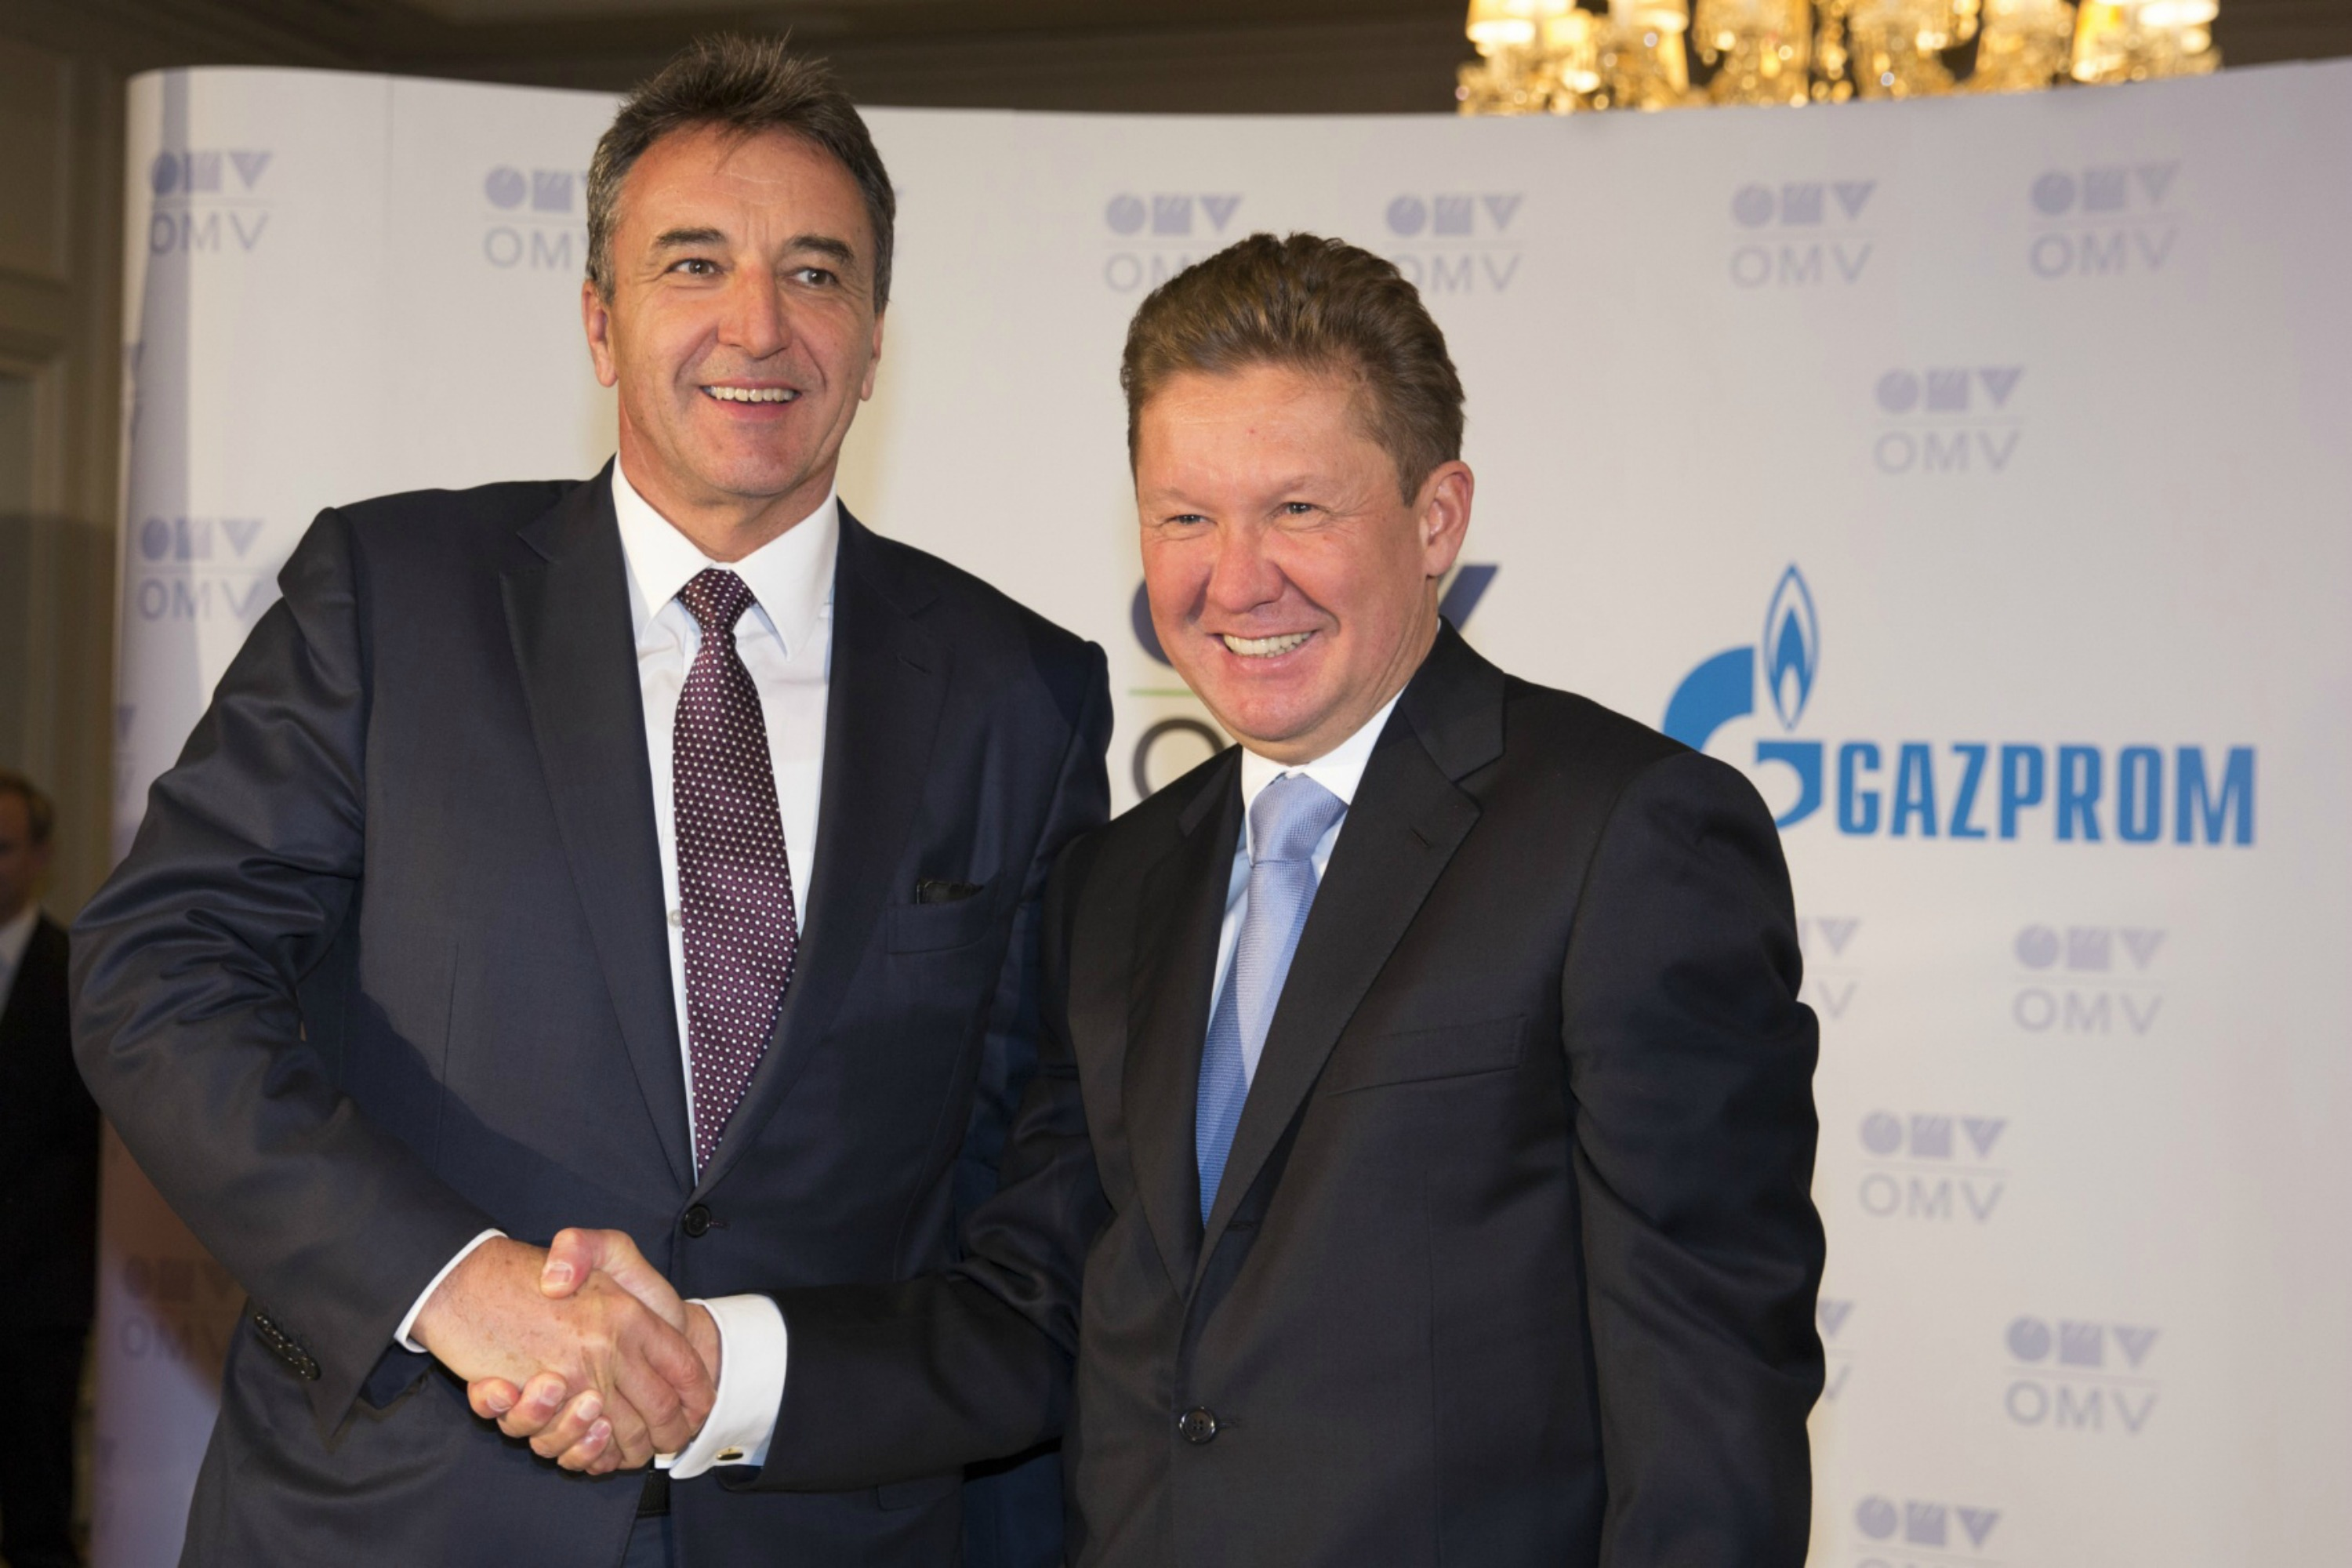 OMV Chief Gerhard Roiss and Gazprom's Alexei Miller, photo OMV